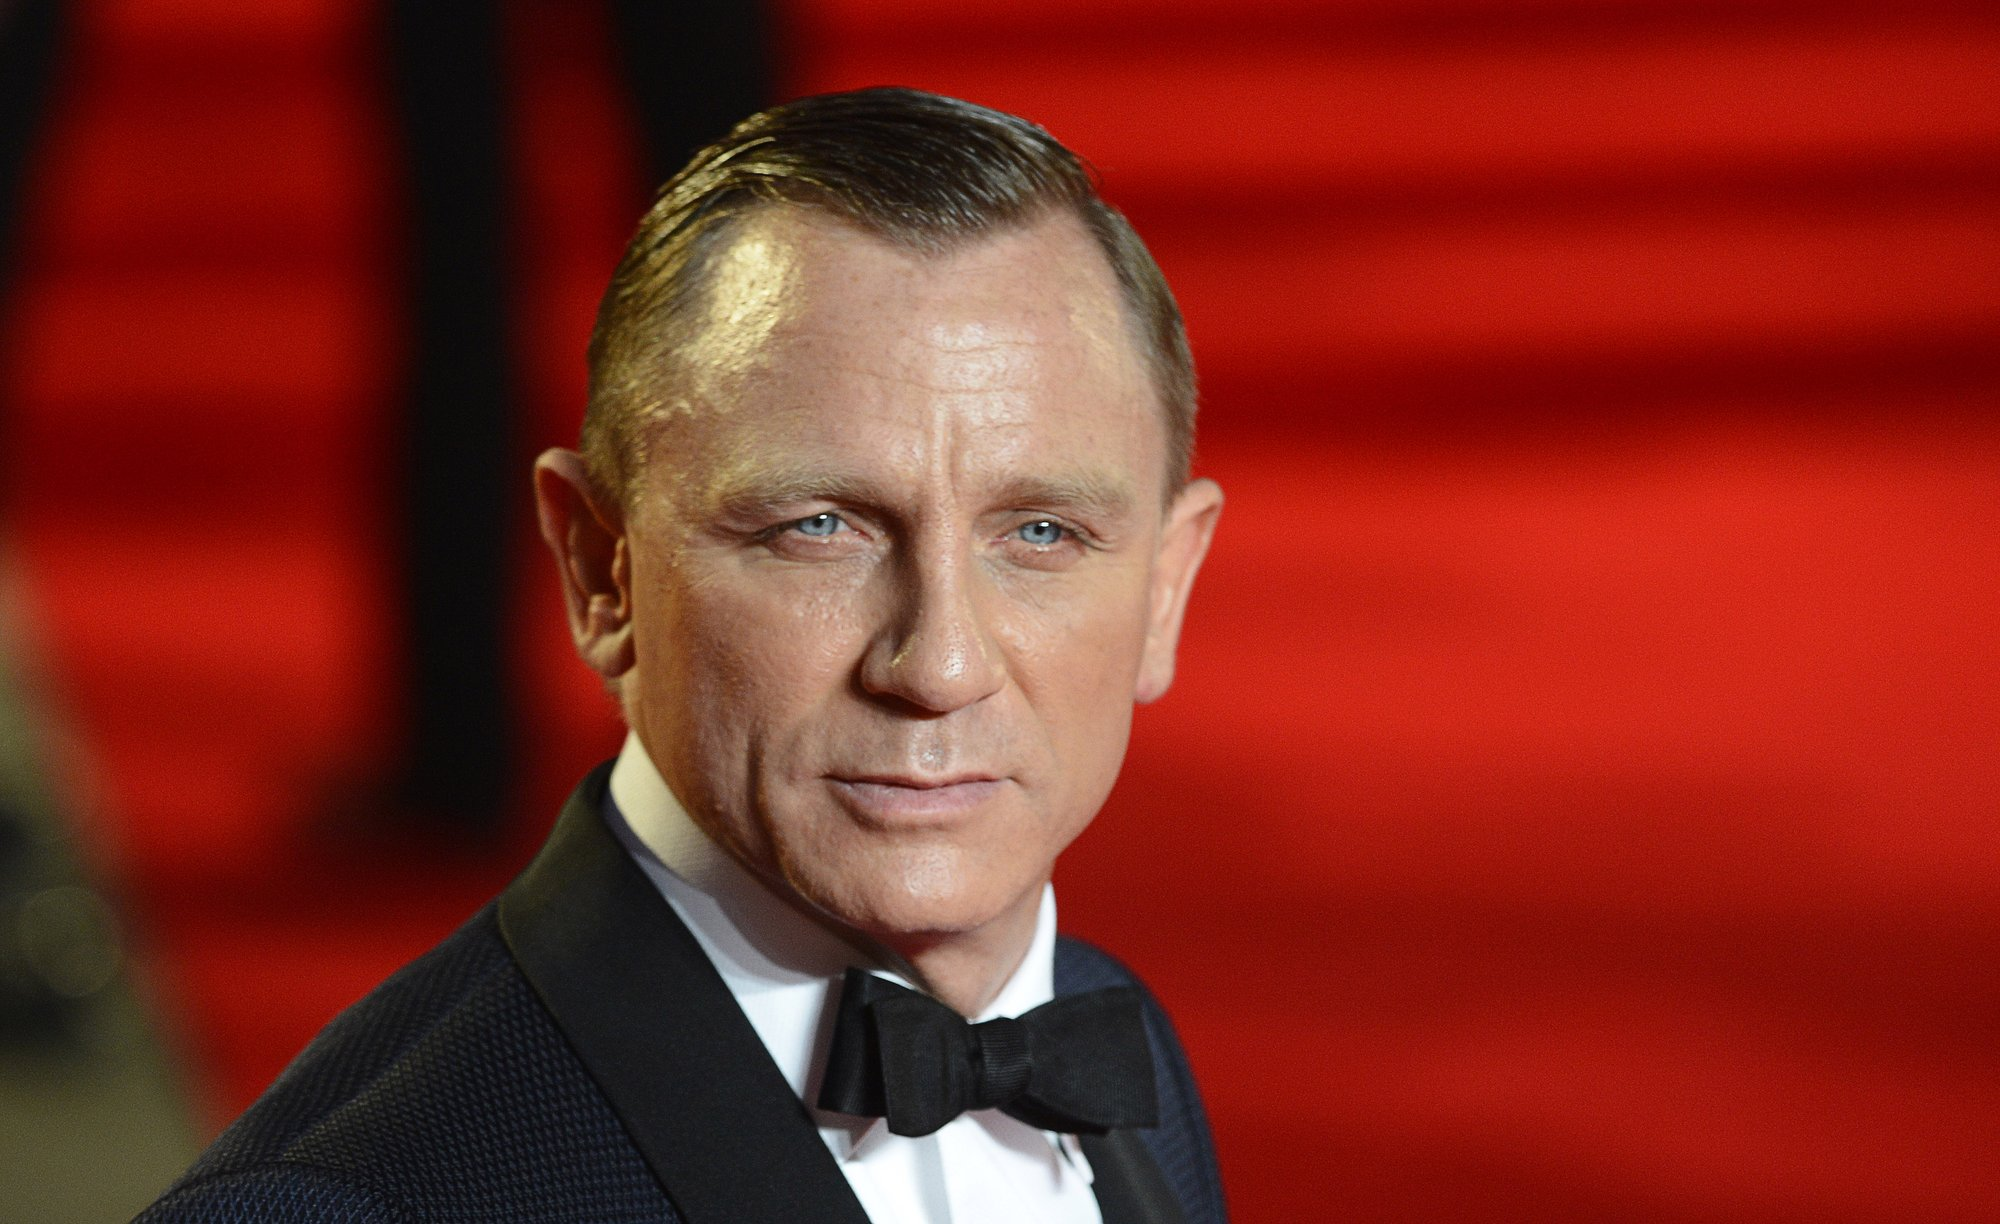 Daniel Craig Widescreen for desktop